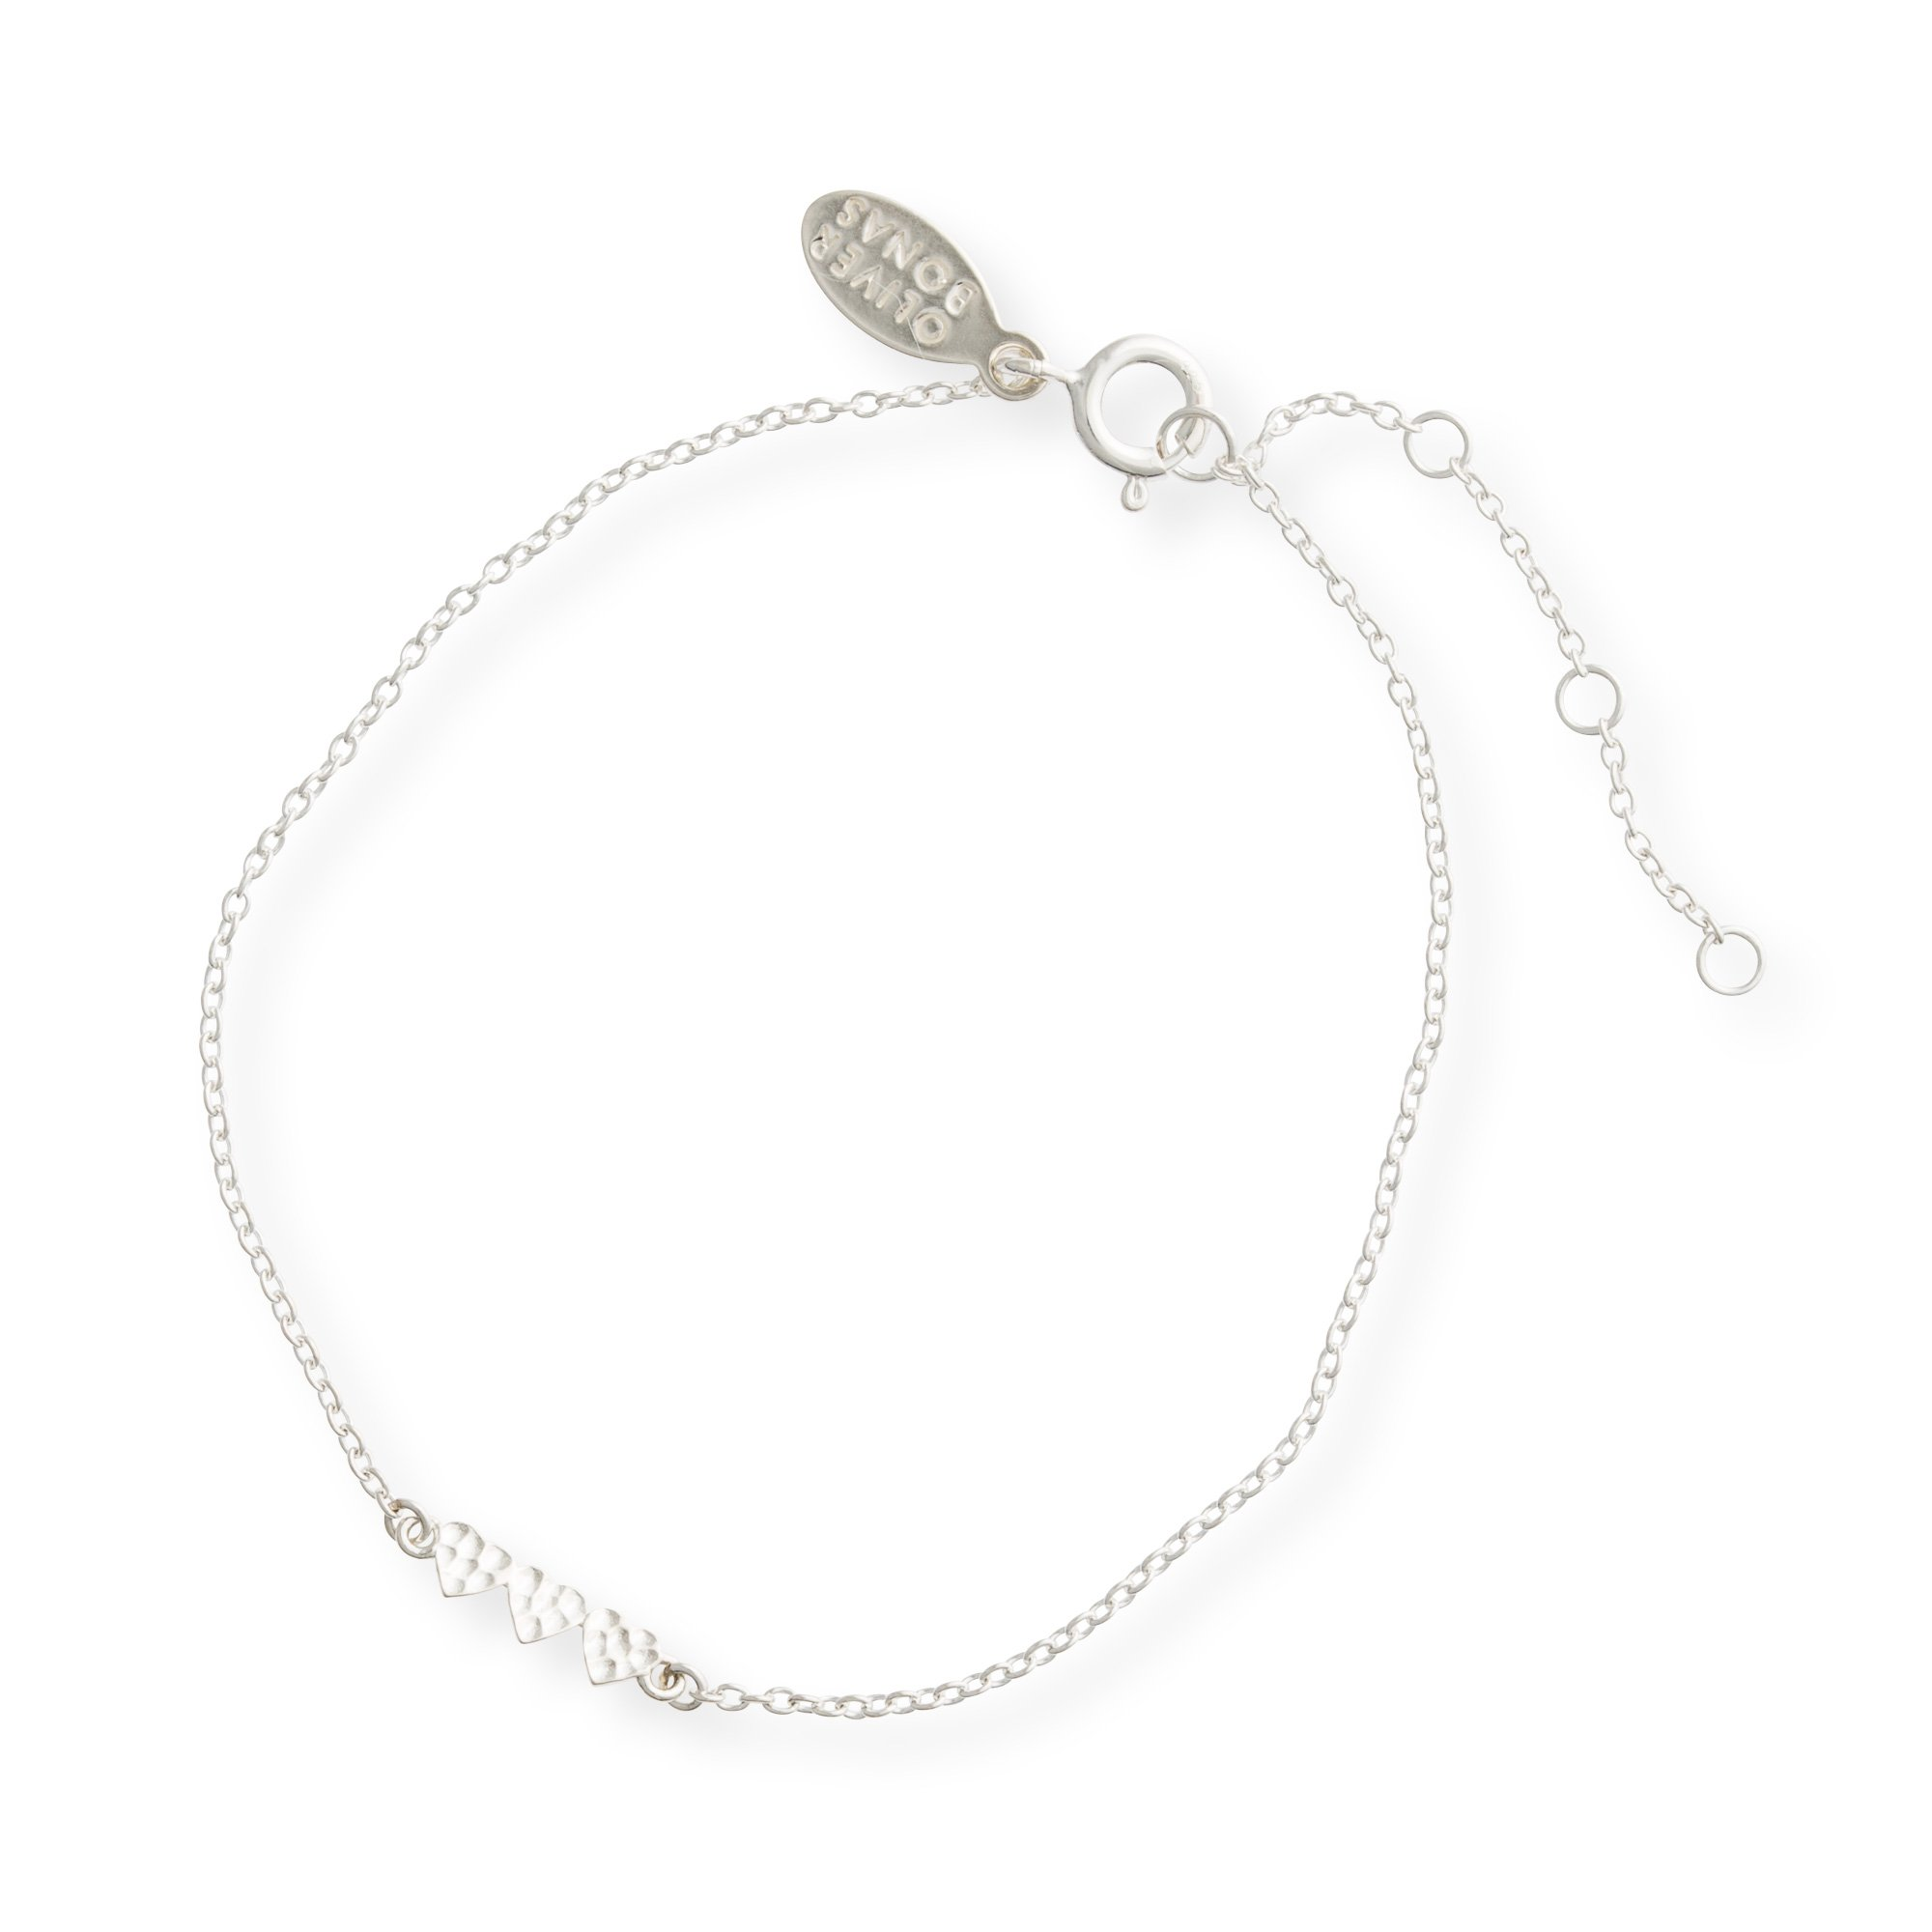 by exclusivity sterling silver bracelet designexclusivity sil heart product